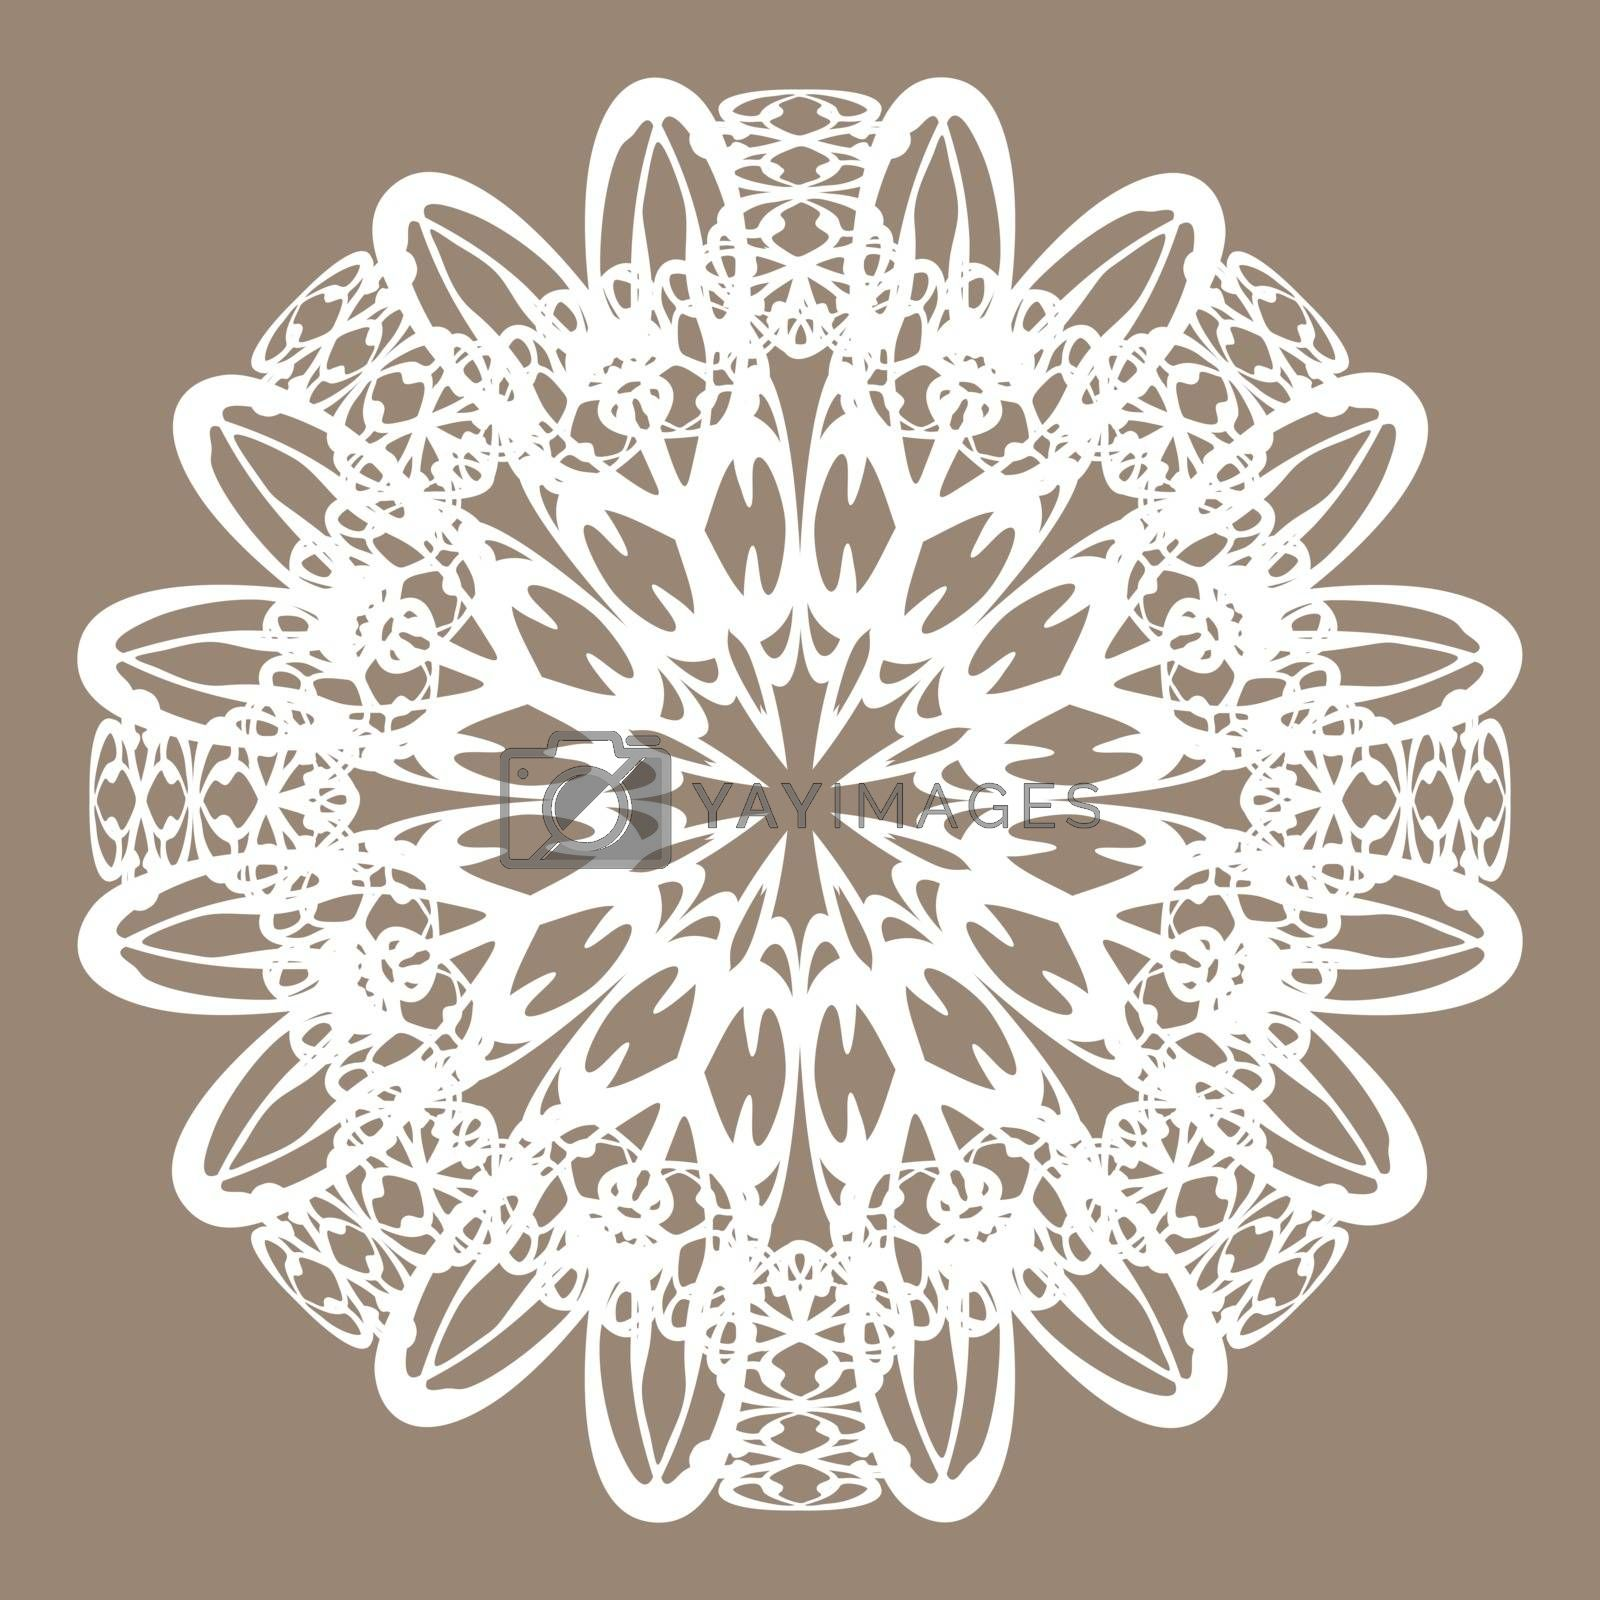 White lace abstract flower or doily by paranoido